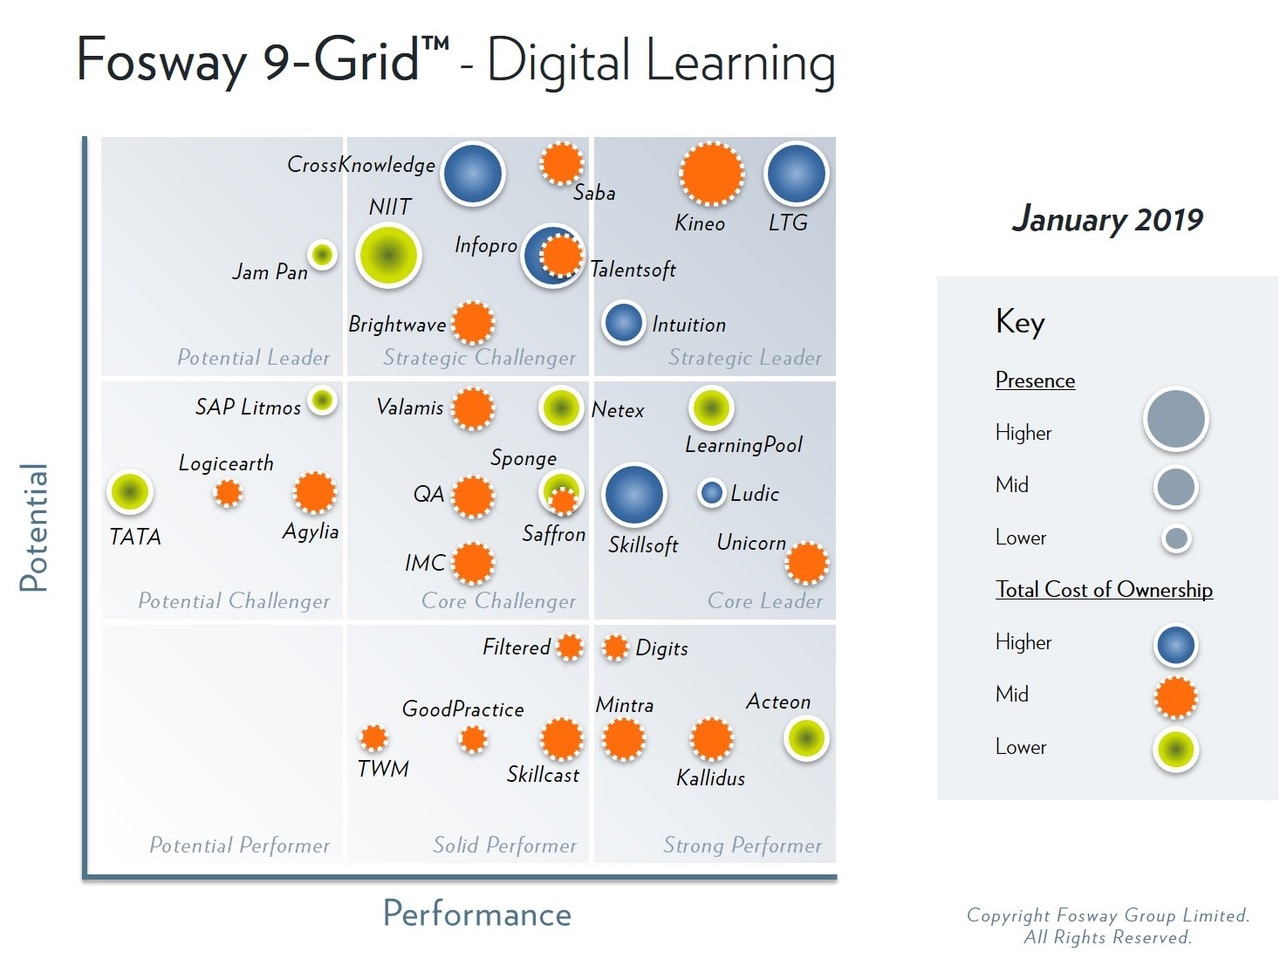 2019-Fosway-9-Grid-Digital-Learning_Lge Ludic identified as a Core Leader by the 2019 Fosway 9-Grid™ for Digital Learning - News - Ludic Consulting